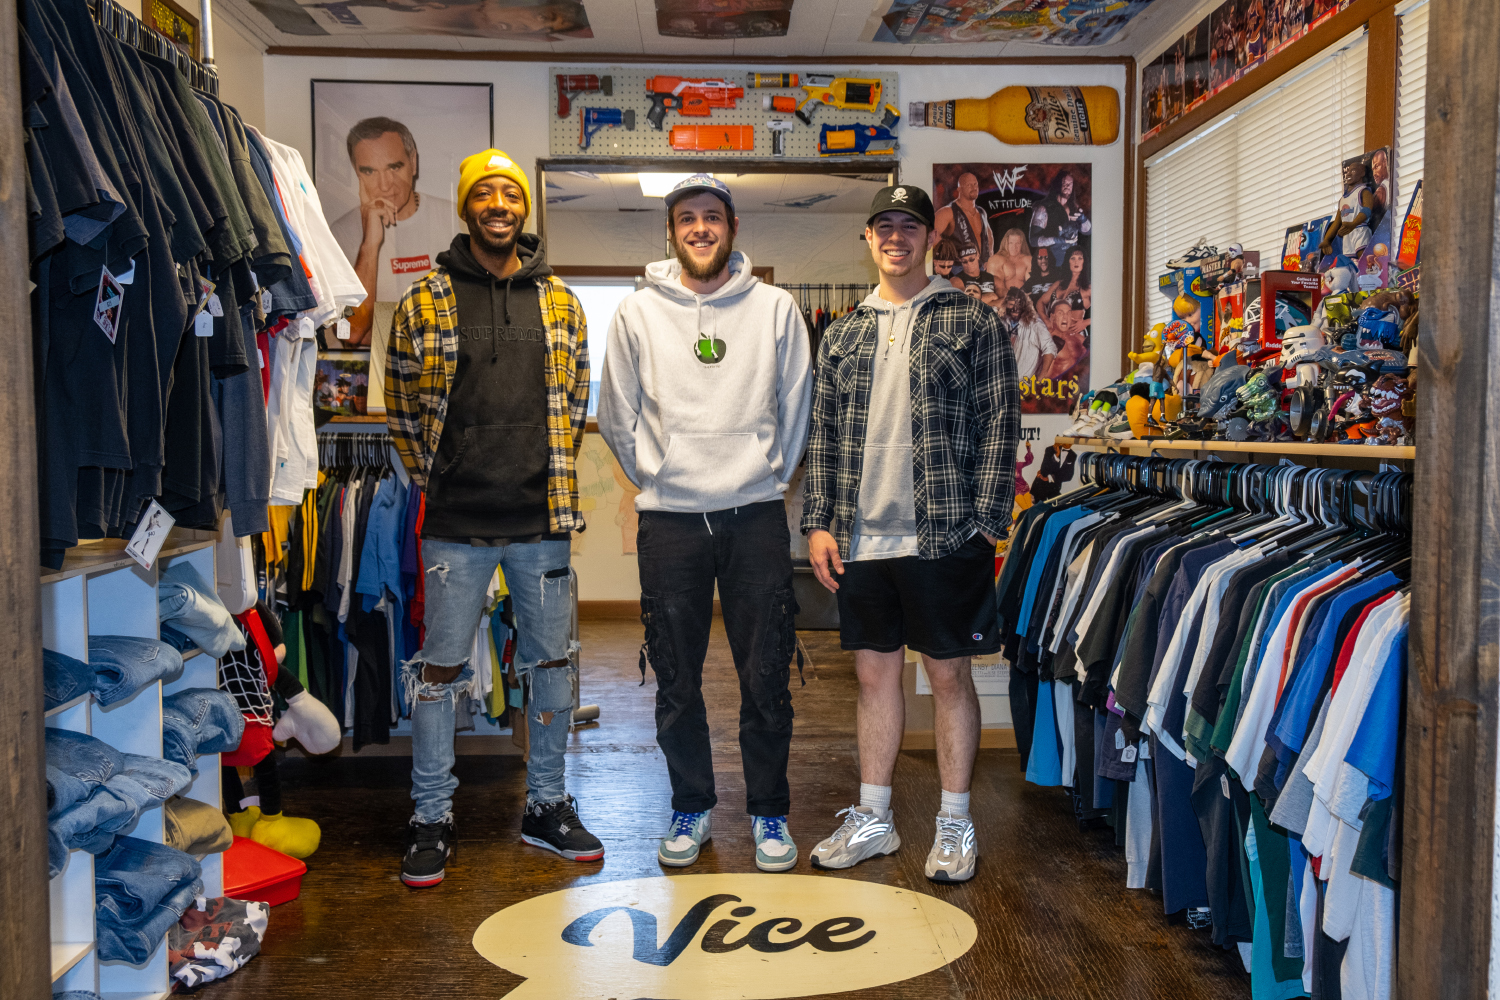 (From left) Demetrius Perry, Peter Krogull, and Tony Casella pose for a portrait at their store Vice in Iowa City on Wednesday, May 8, 2019. Vice sells streetwear and vintage clothing to the Iowa City community, and online through their e-Bay page. In April Perry, Krogull, and Casella started a podcast about sneakers, fashion, and the fashion culture of Iowa City.